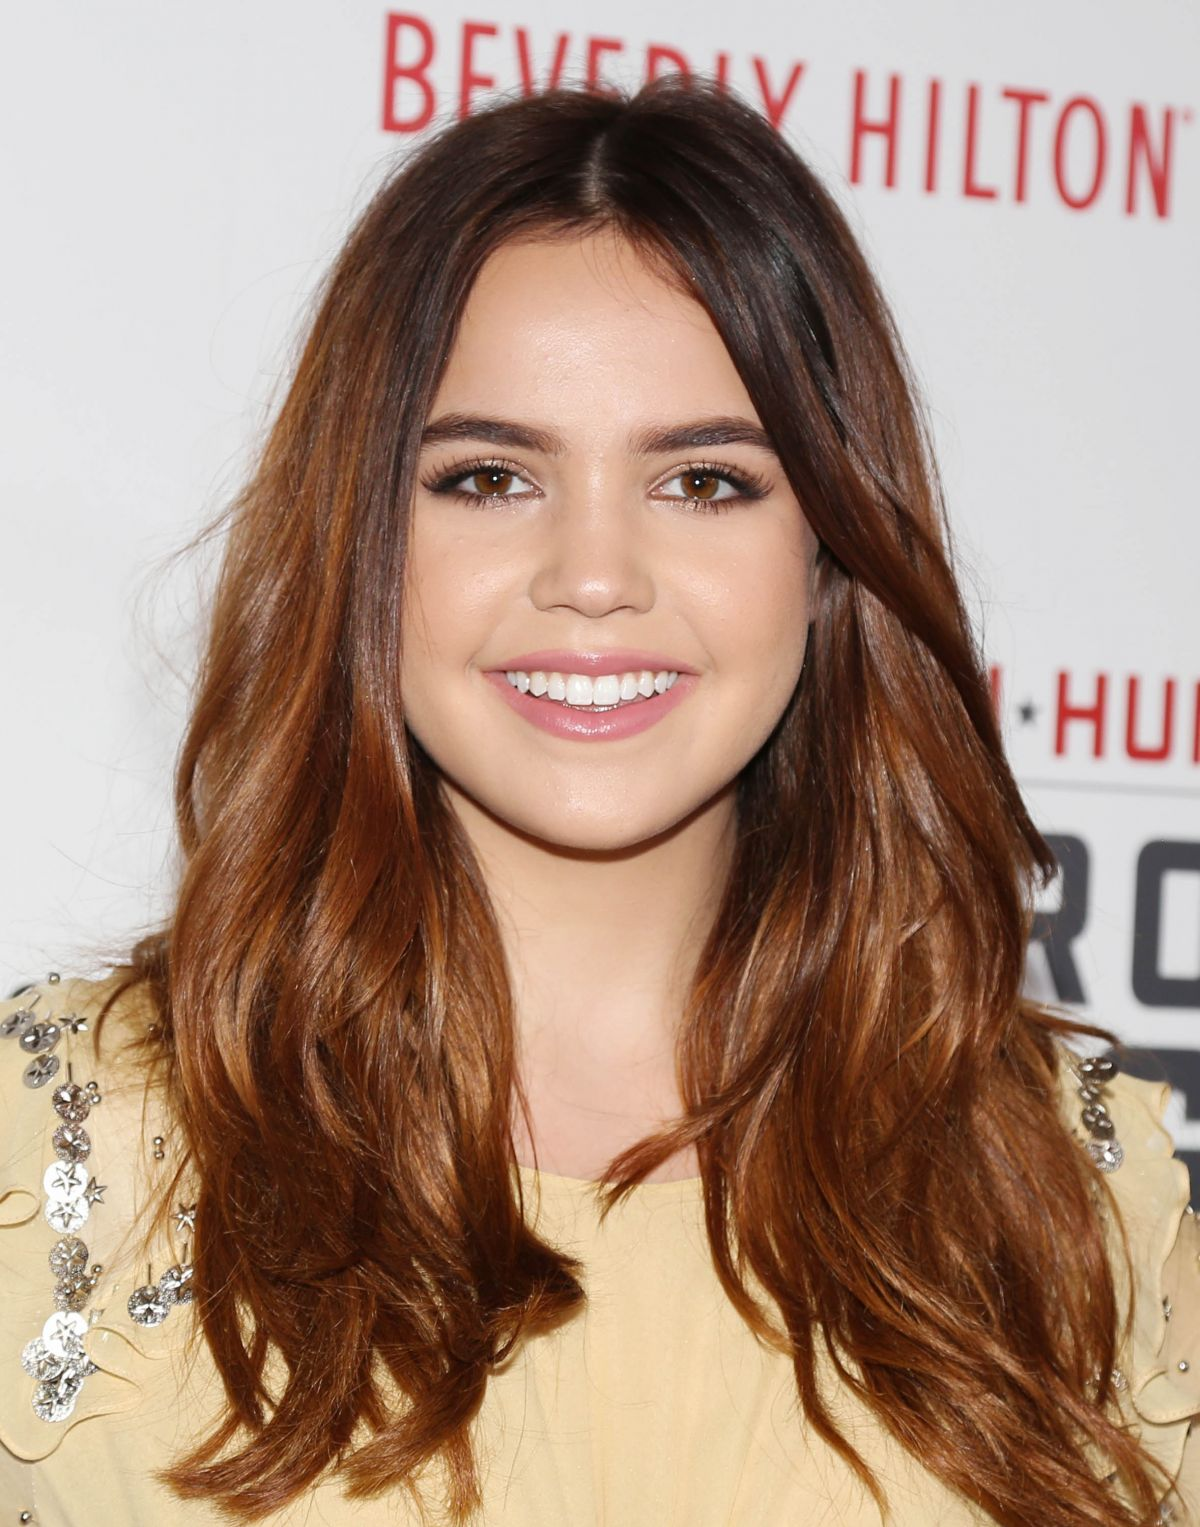 bailee-madison-at-7th-aannual-hero-dog-awards-in-beverly-hills-09-16-2017_1.jpg